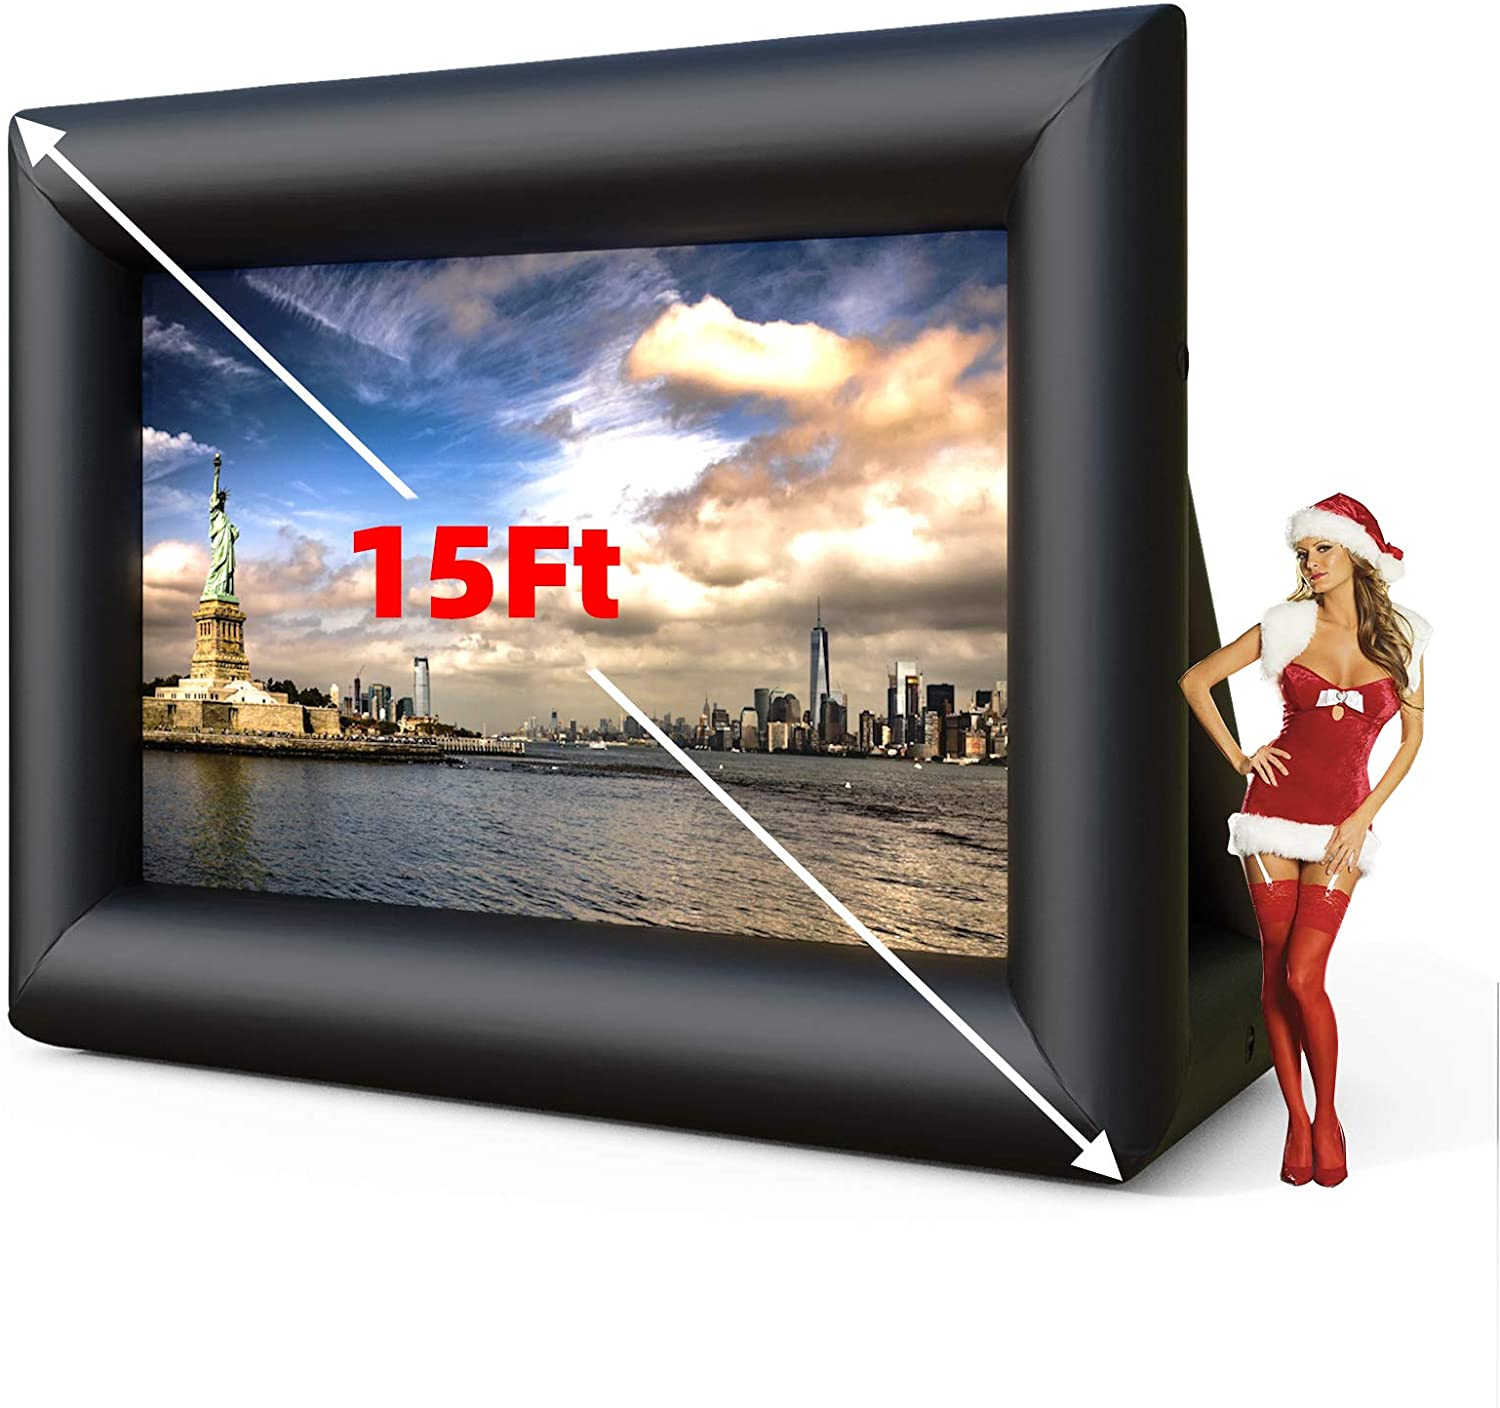 SUNCOO 15ft Inflatable Movie Screen